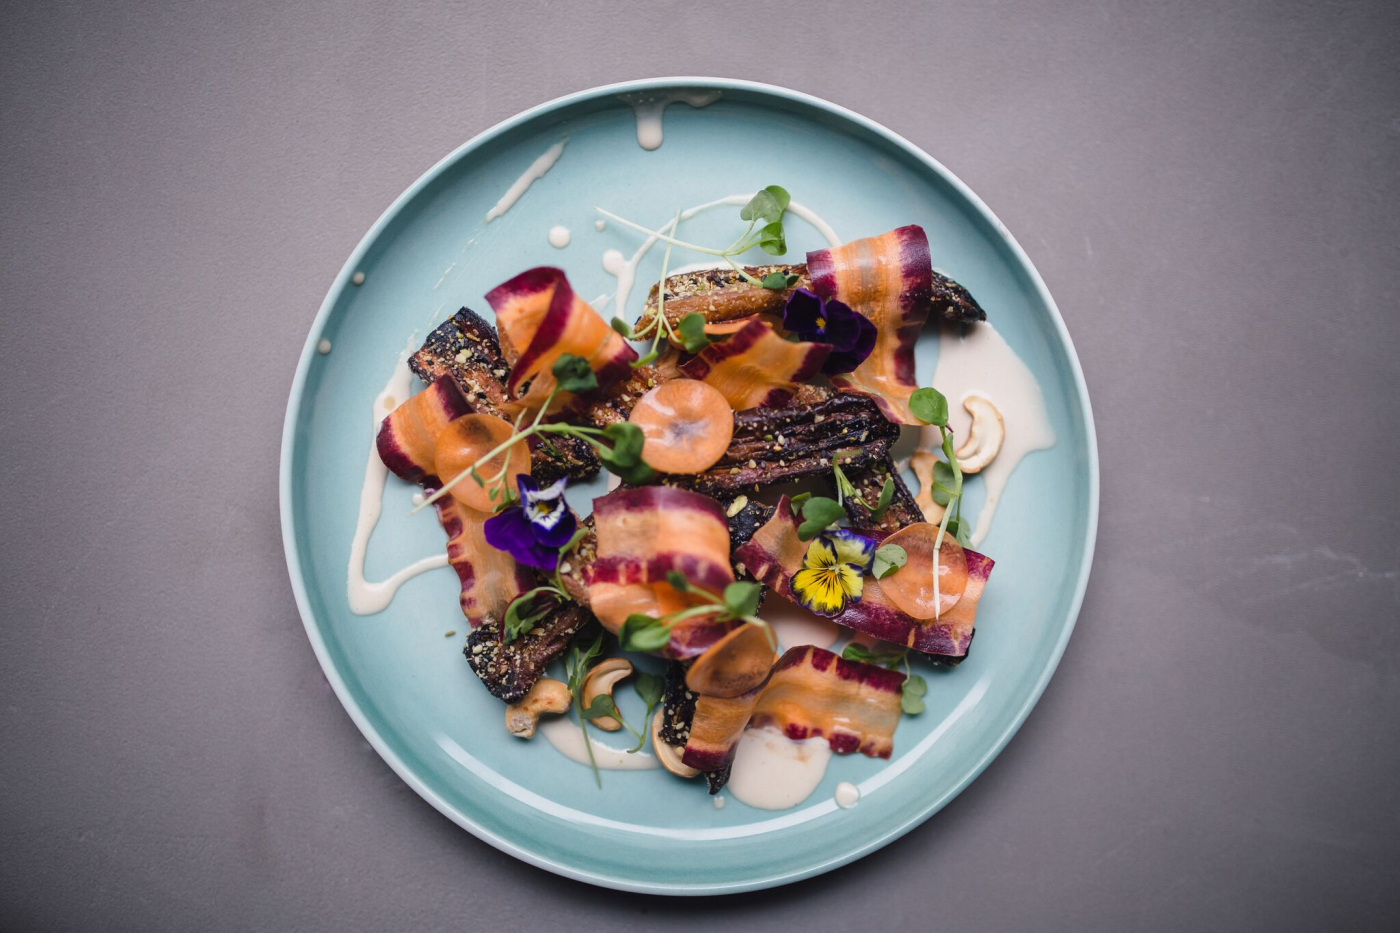 Maple syrup charcoal grilled carrots, cashew tahini, pickled carrot shaves and duhkkar,